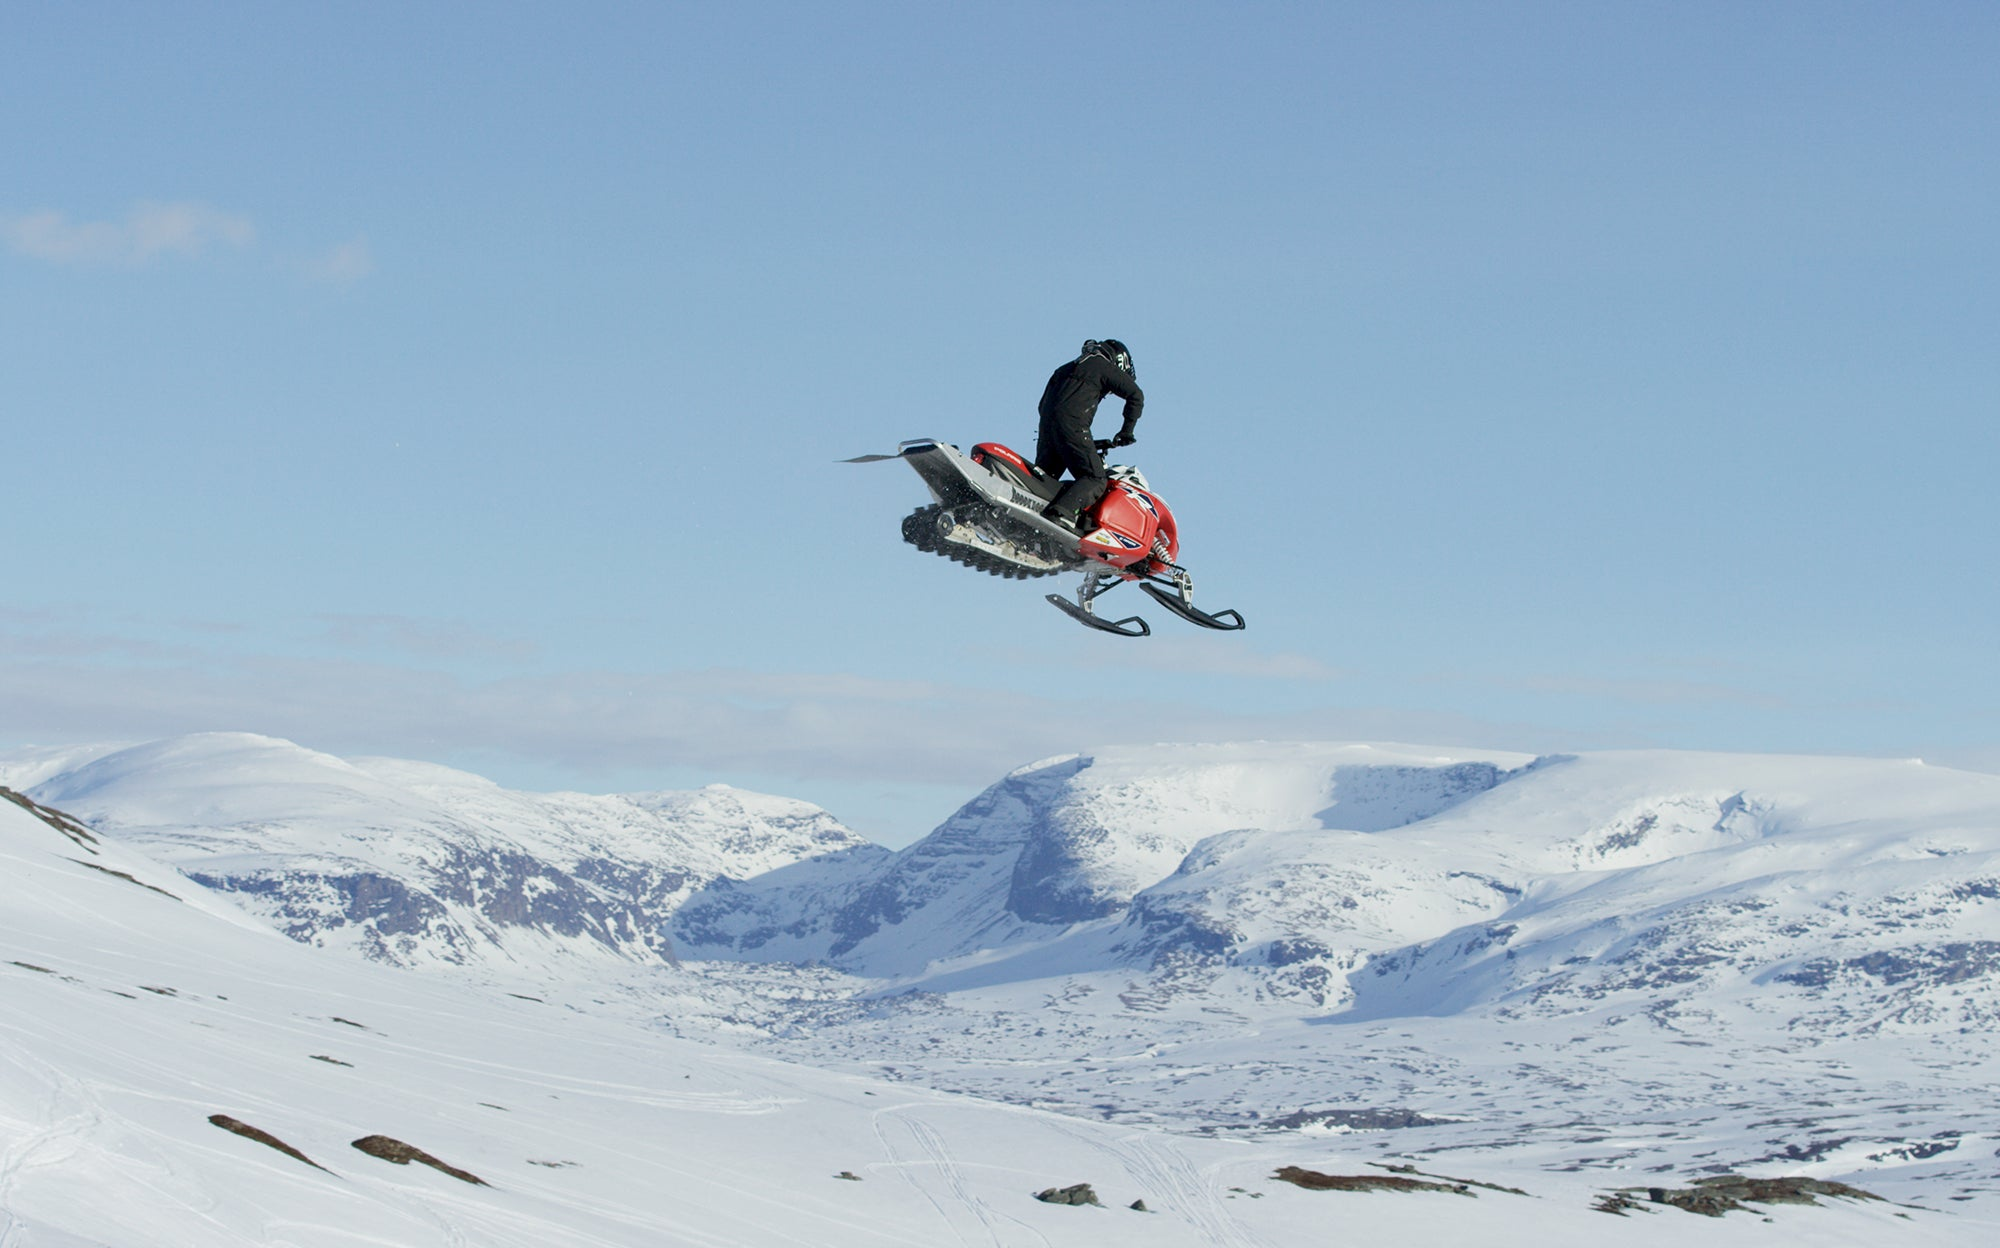 Sondre Zachariassen snowmobiling in the TOBE Vivid Mono Suit